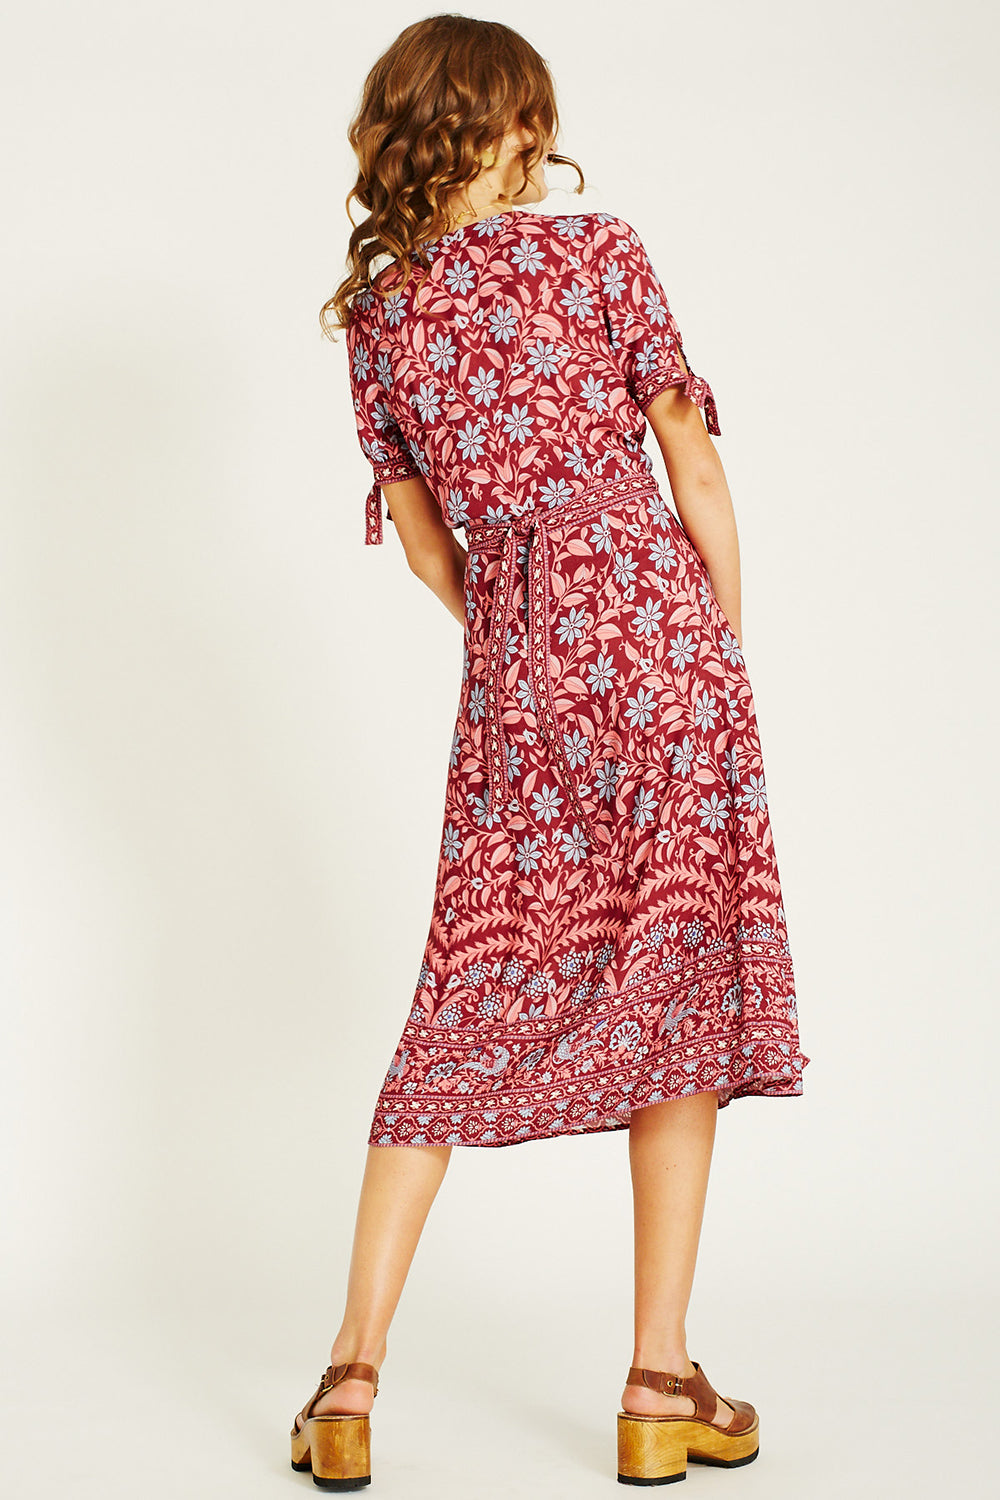 Marigold Midi Wrap Dress in Rhubarb